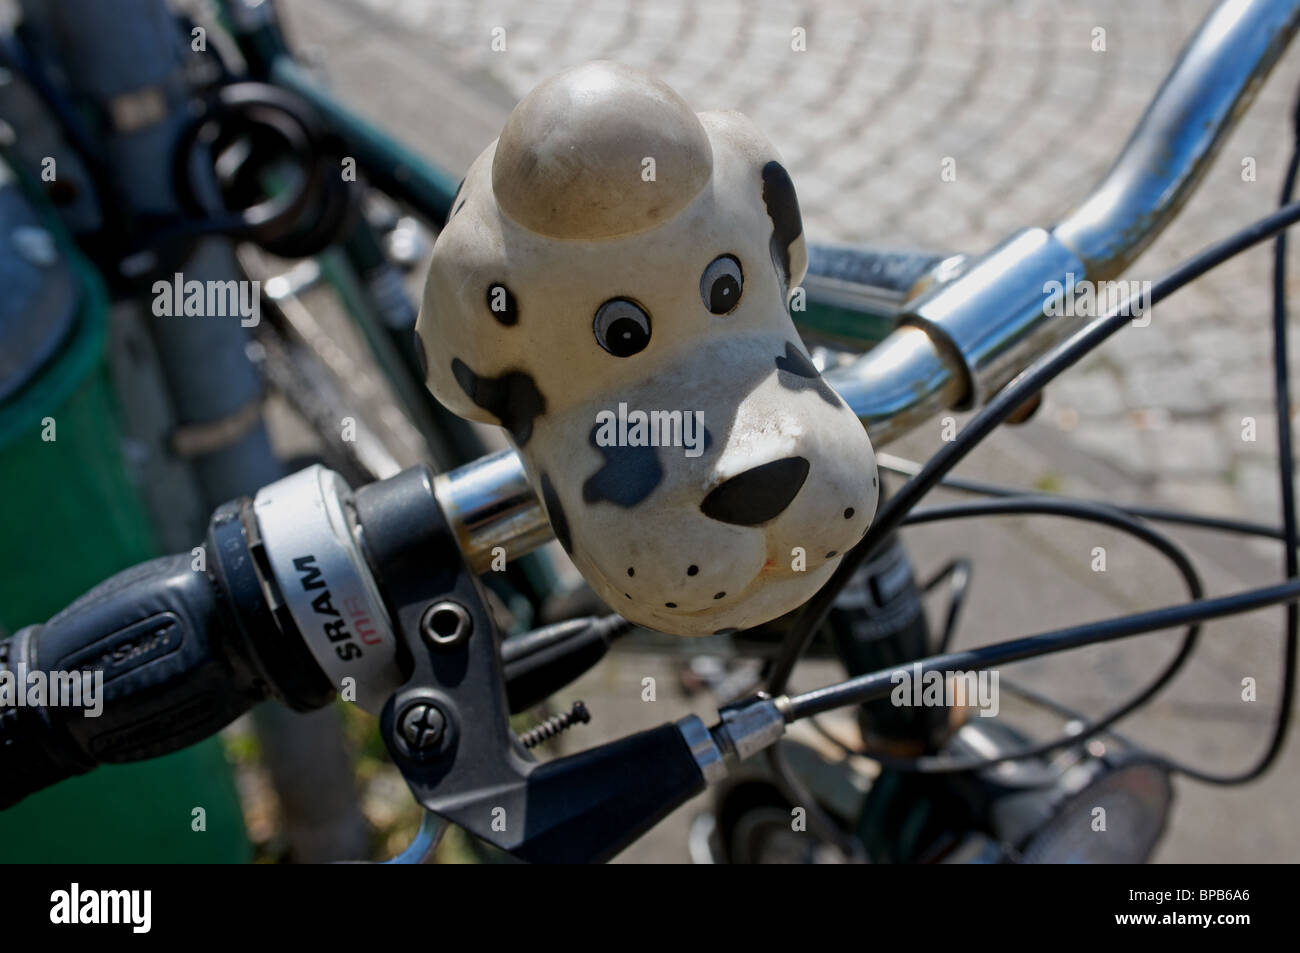 Dog shaped bicycle horn attached to handlebars - Stock Image